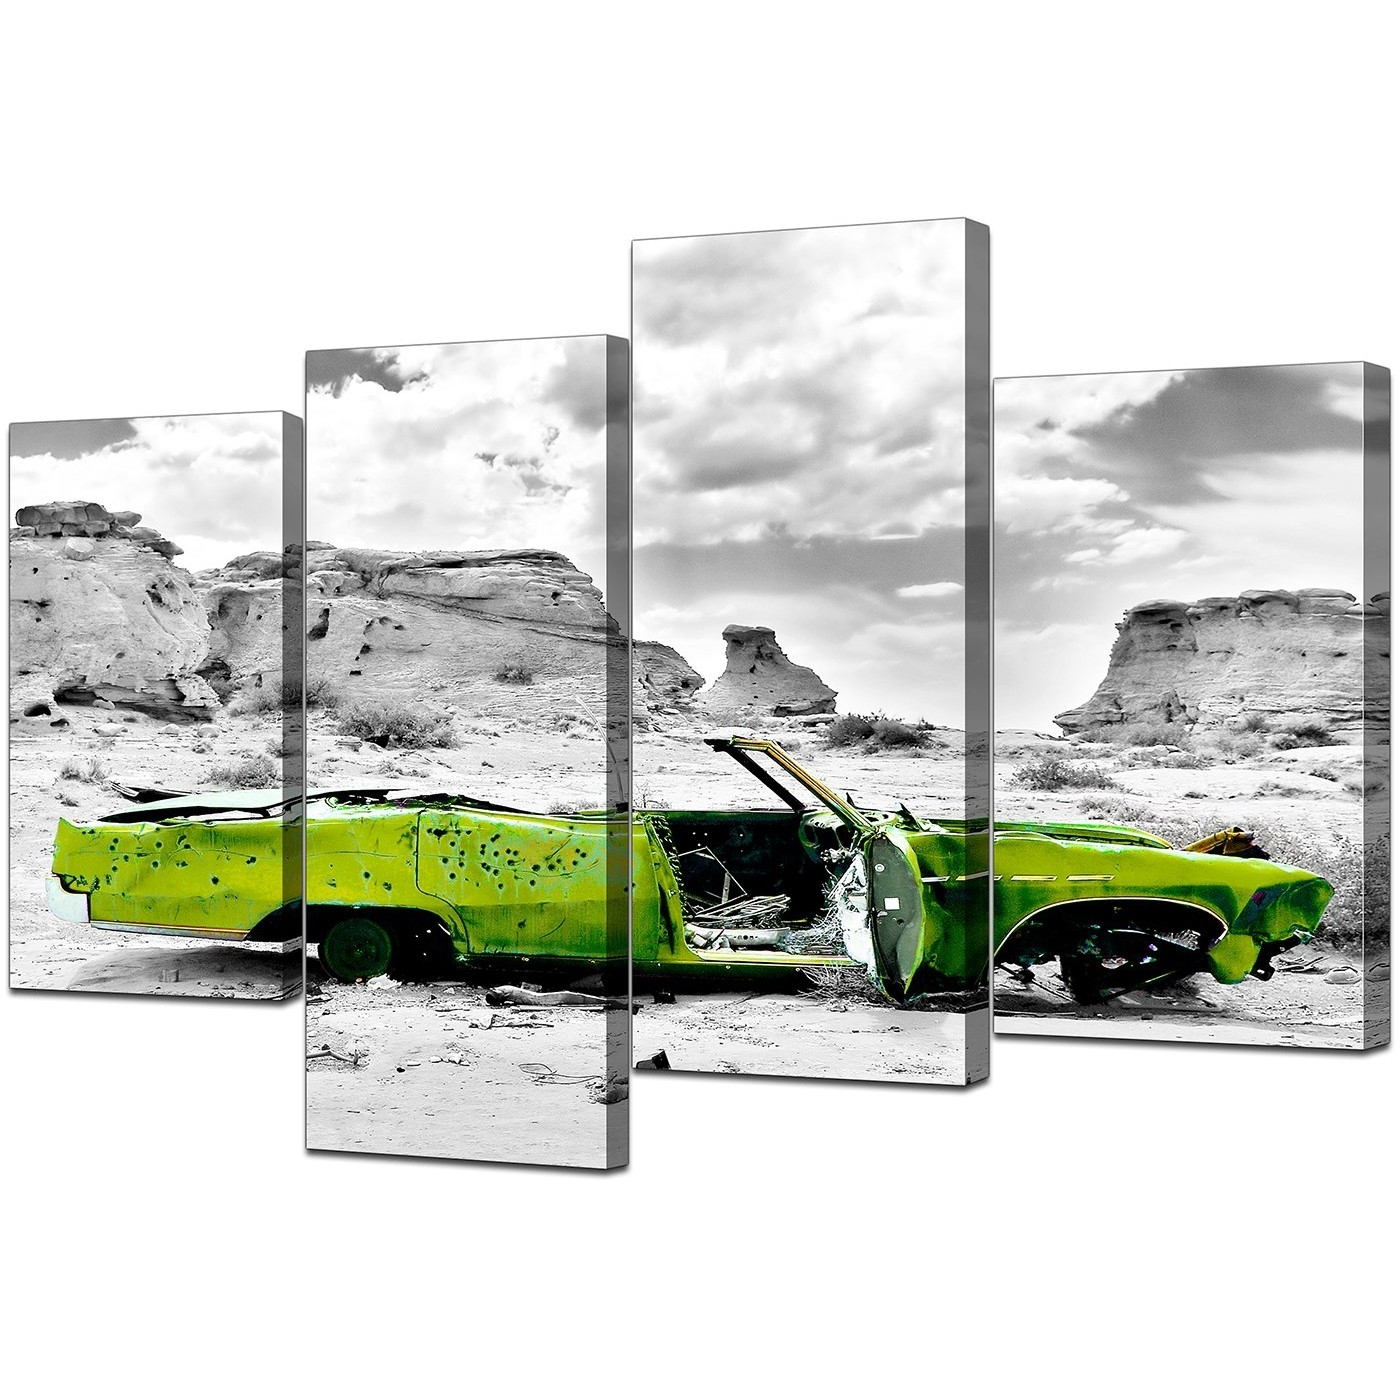 Canvas Art Of Green Car In Black & White For Your Office Intended For Widely Used Lime Green Canvas Wall Art (View 3 of 15)